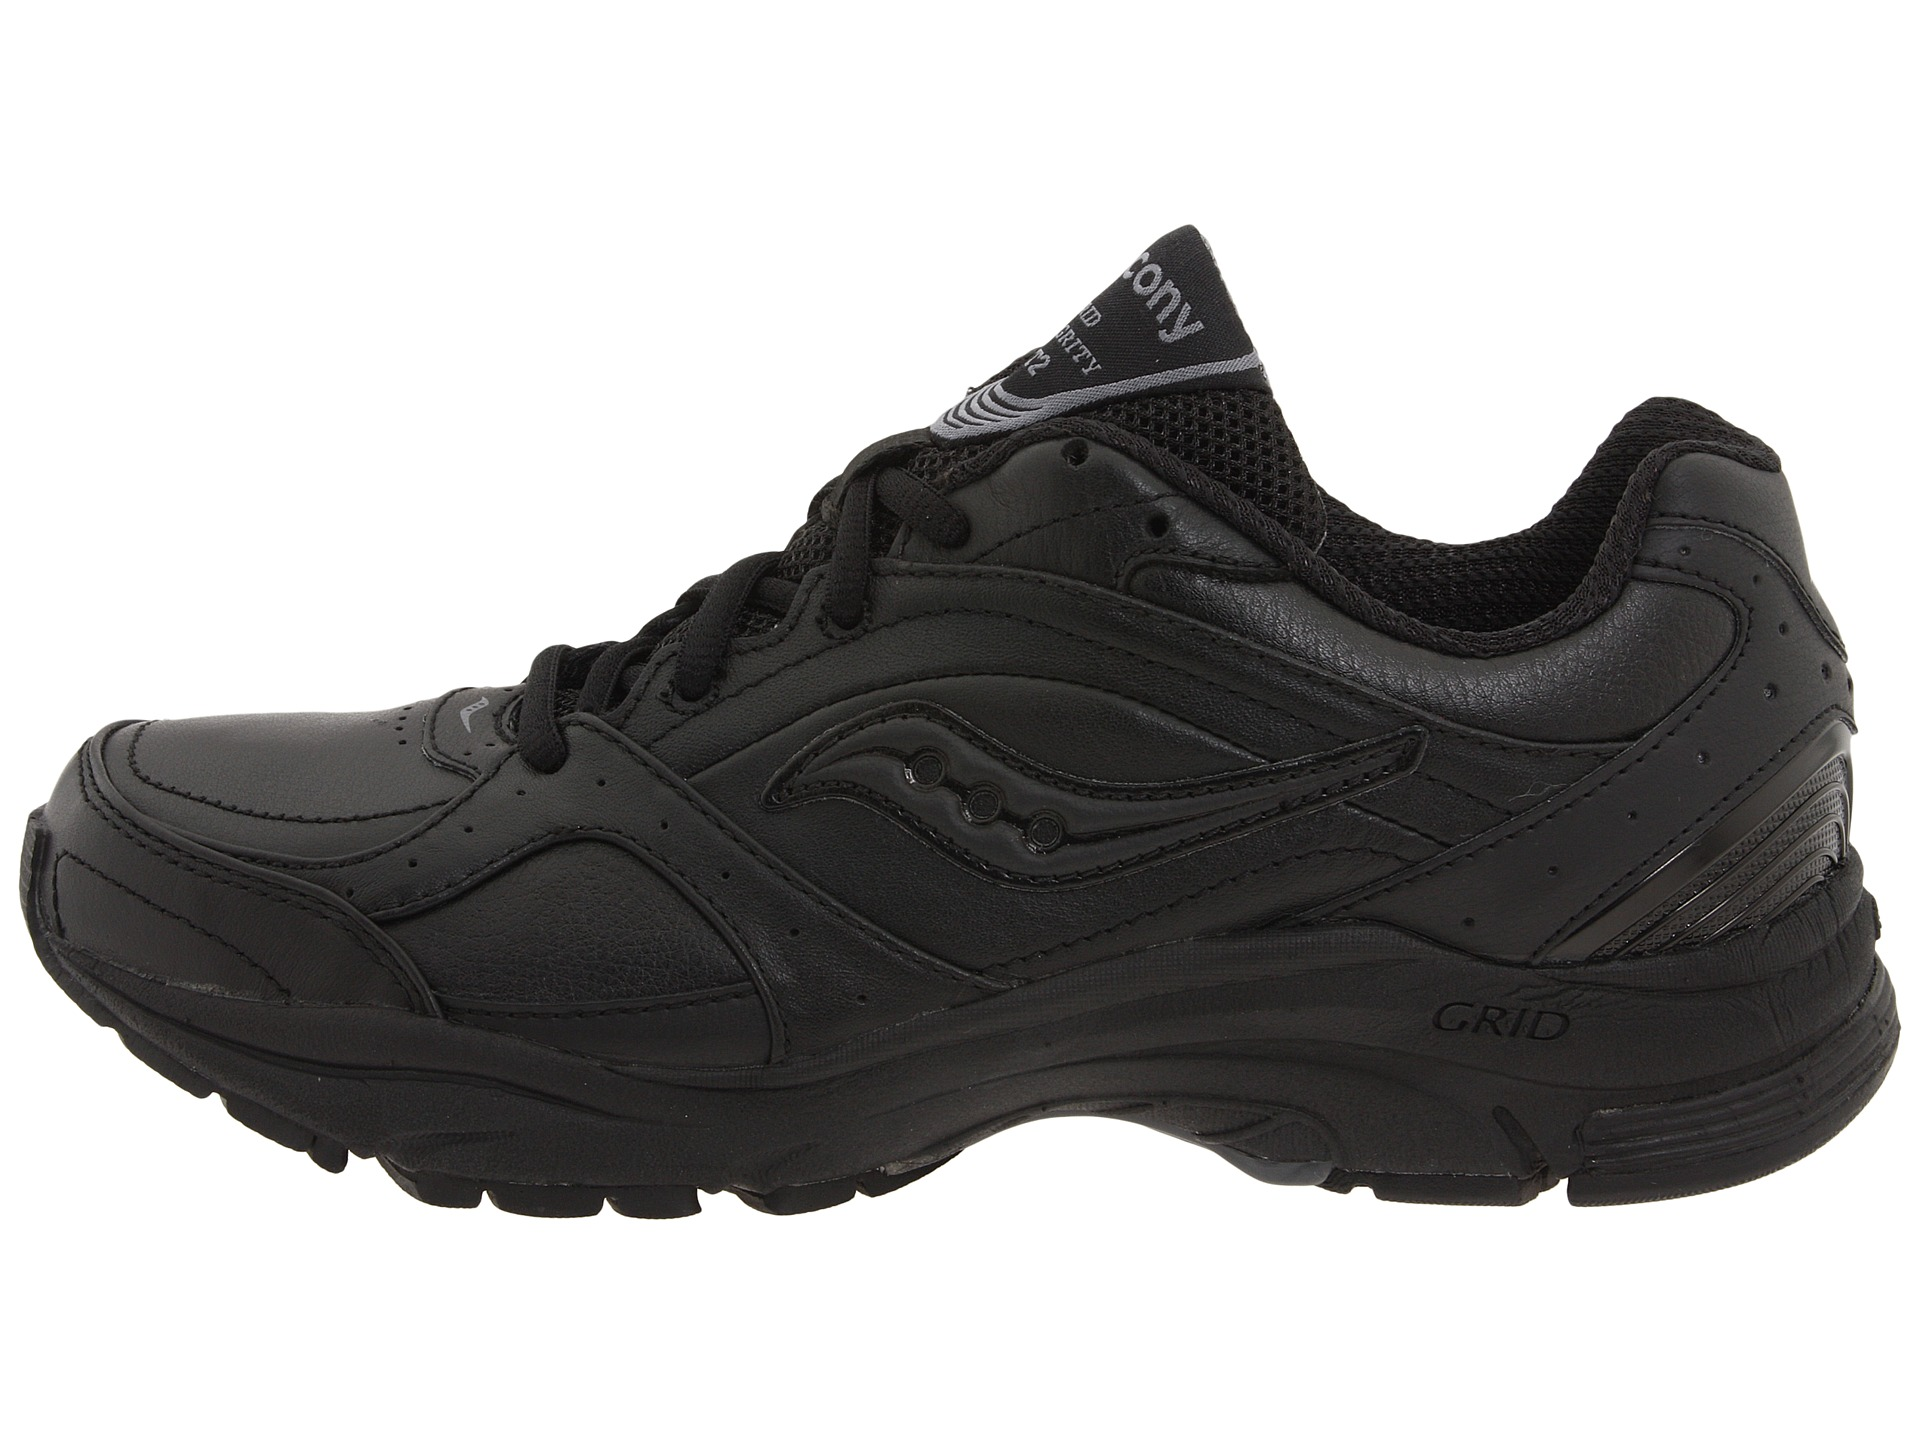 Saucony Black Walking Shoes